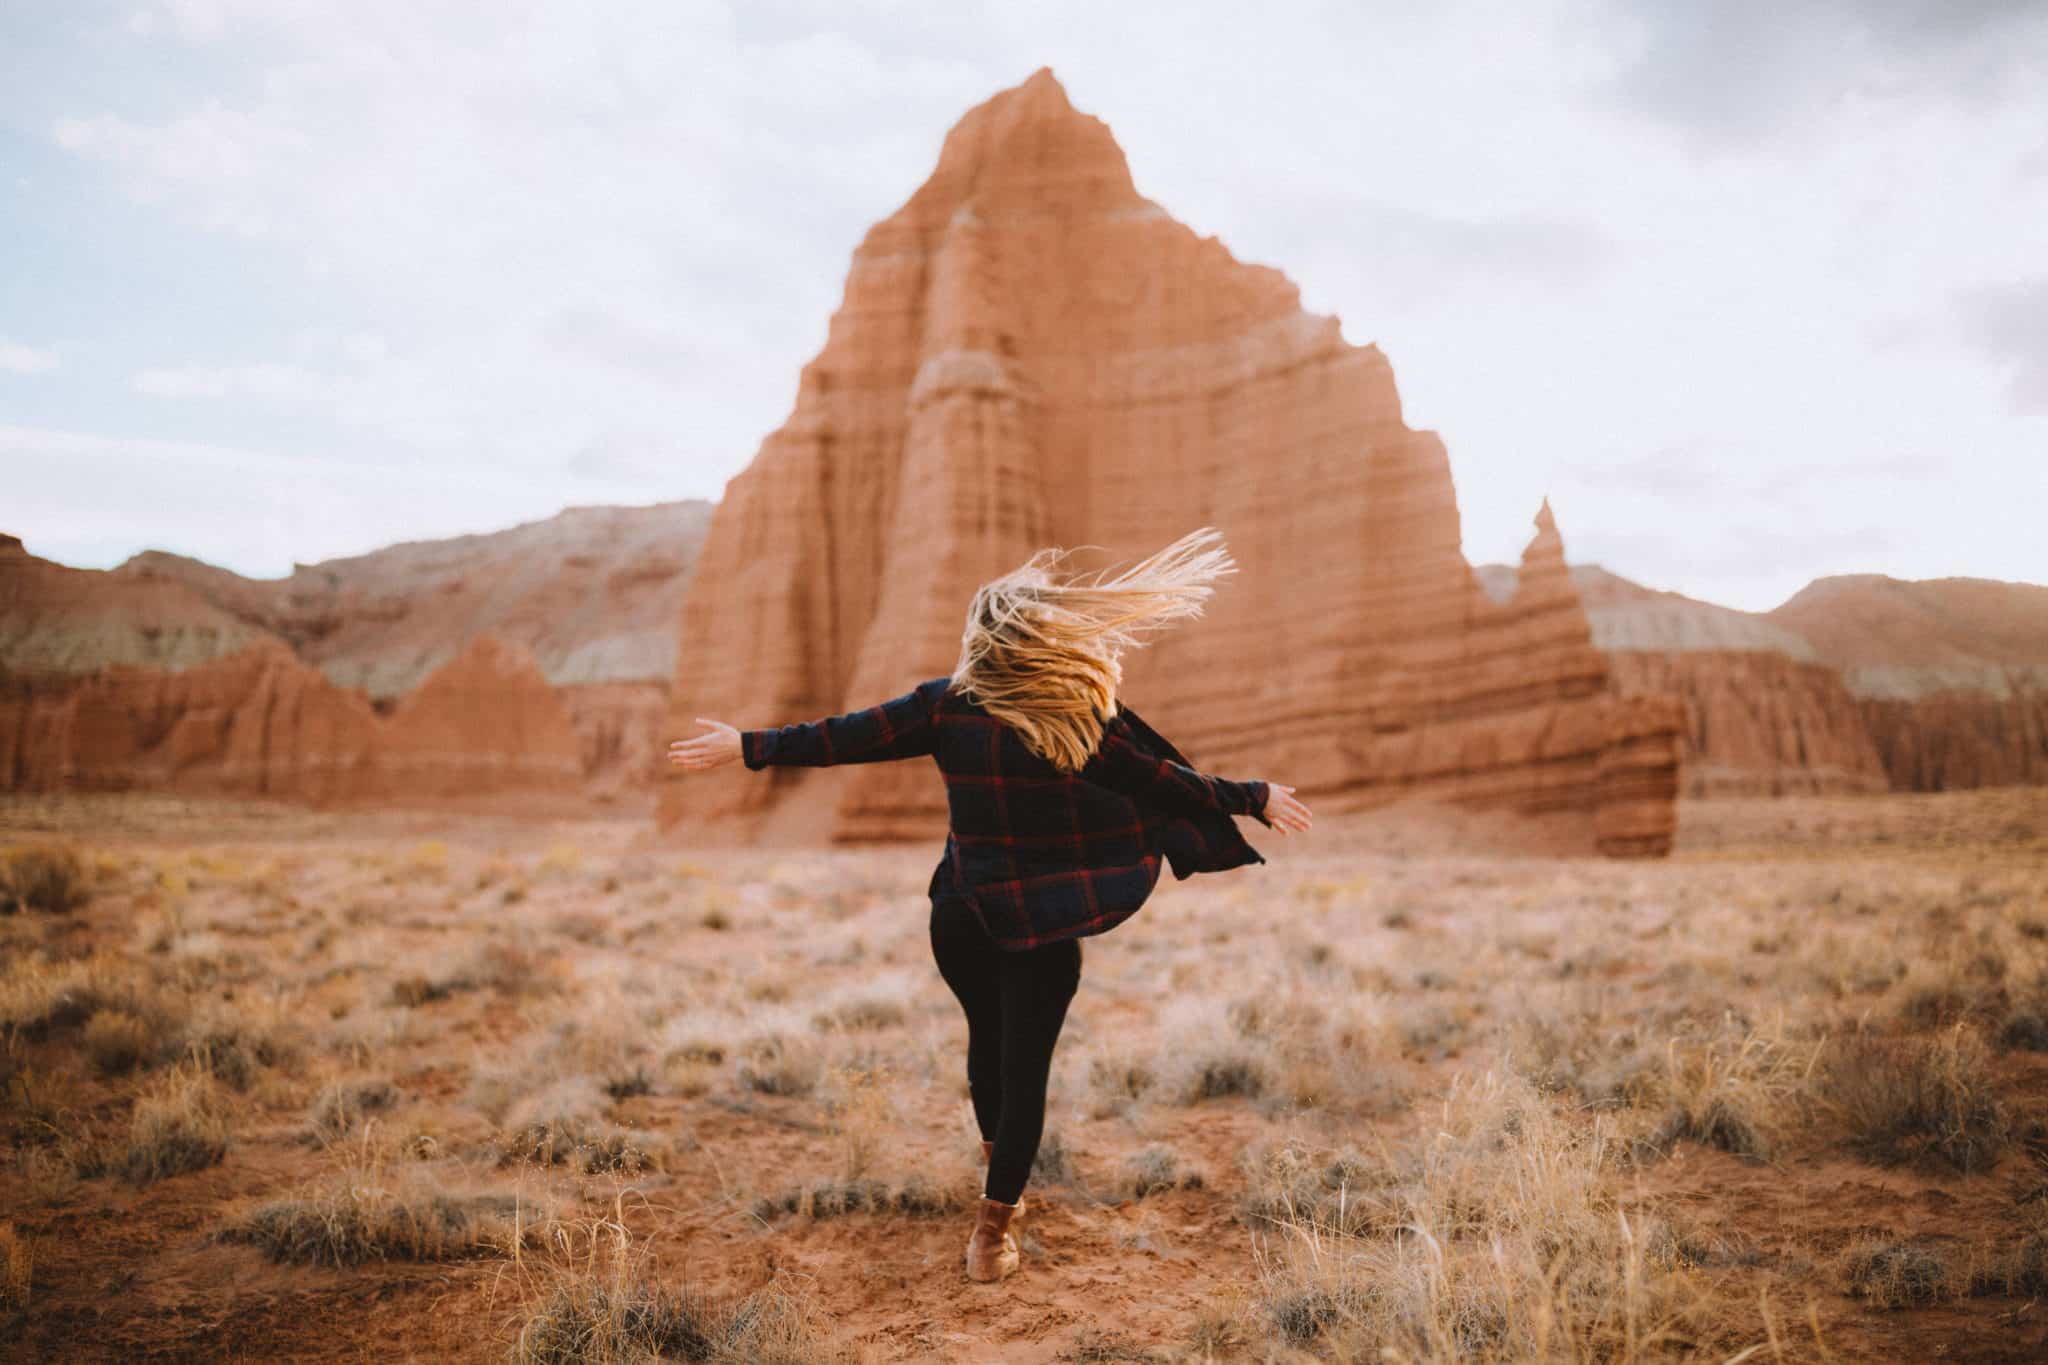 The Complete Utah National Parks Road Trip Itinerary (Hikes, Photo Spots + MORE!)